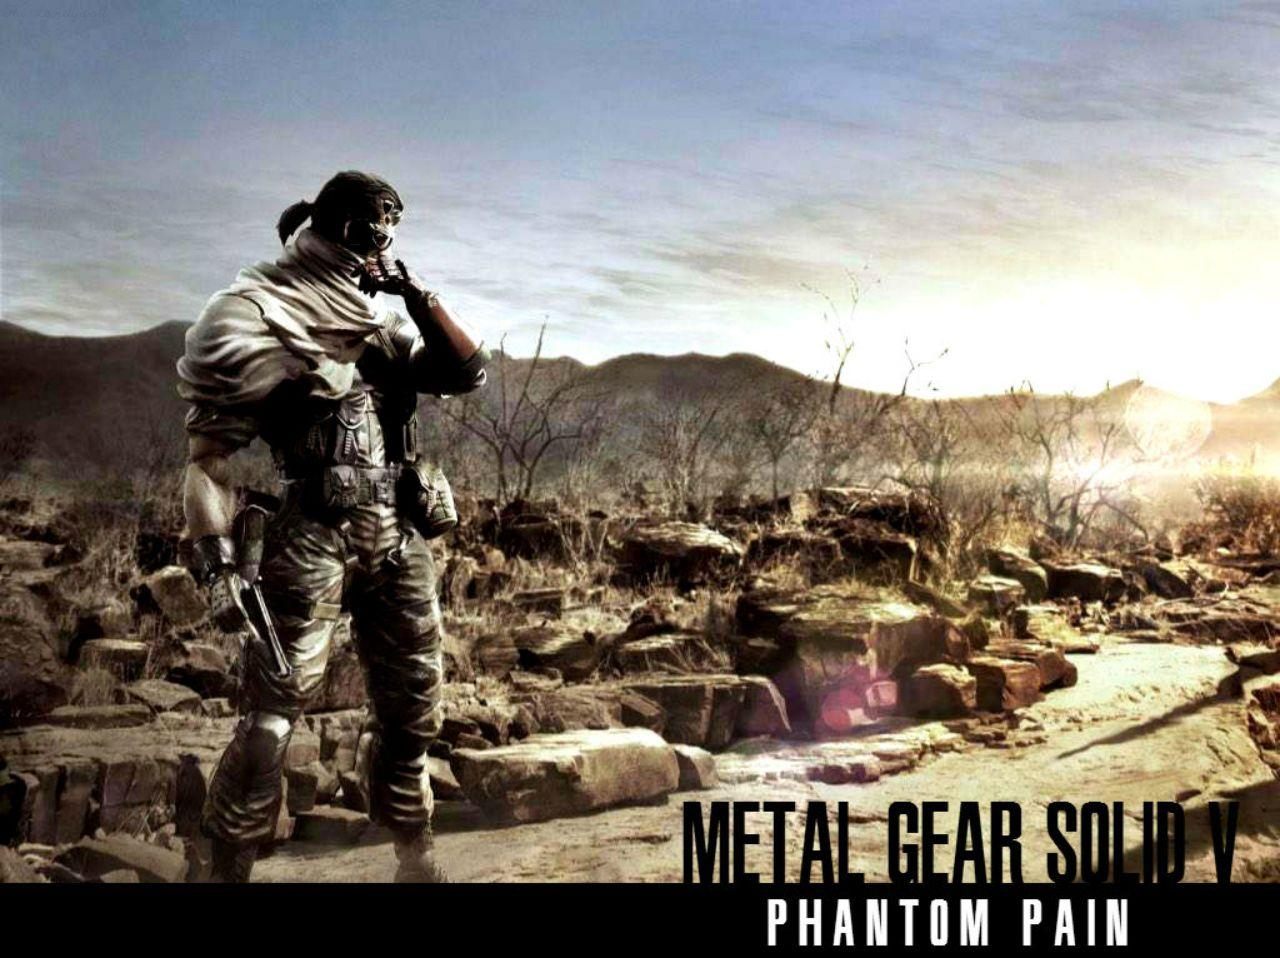 Metal Gear Solid V: Phantom Pain Wallpaper picture - ID: 57566